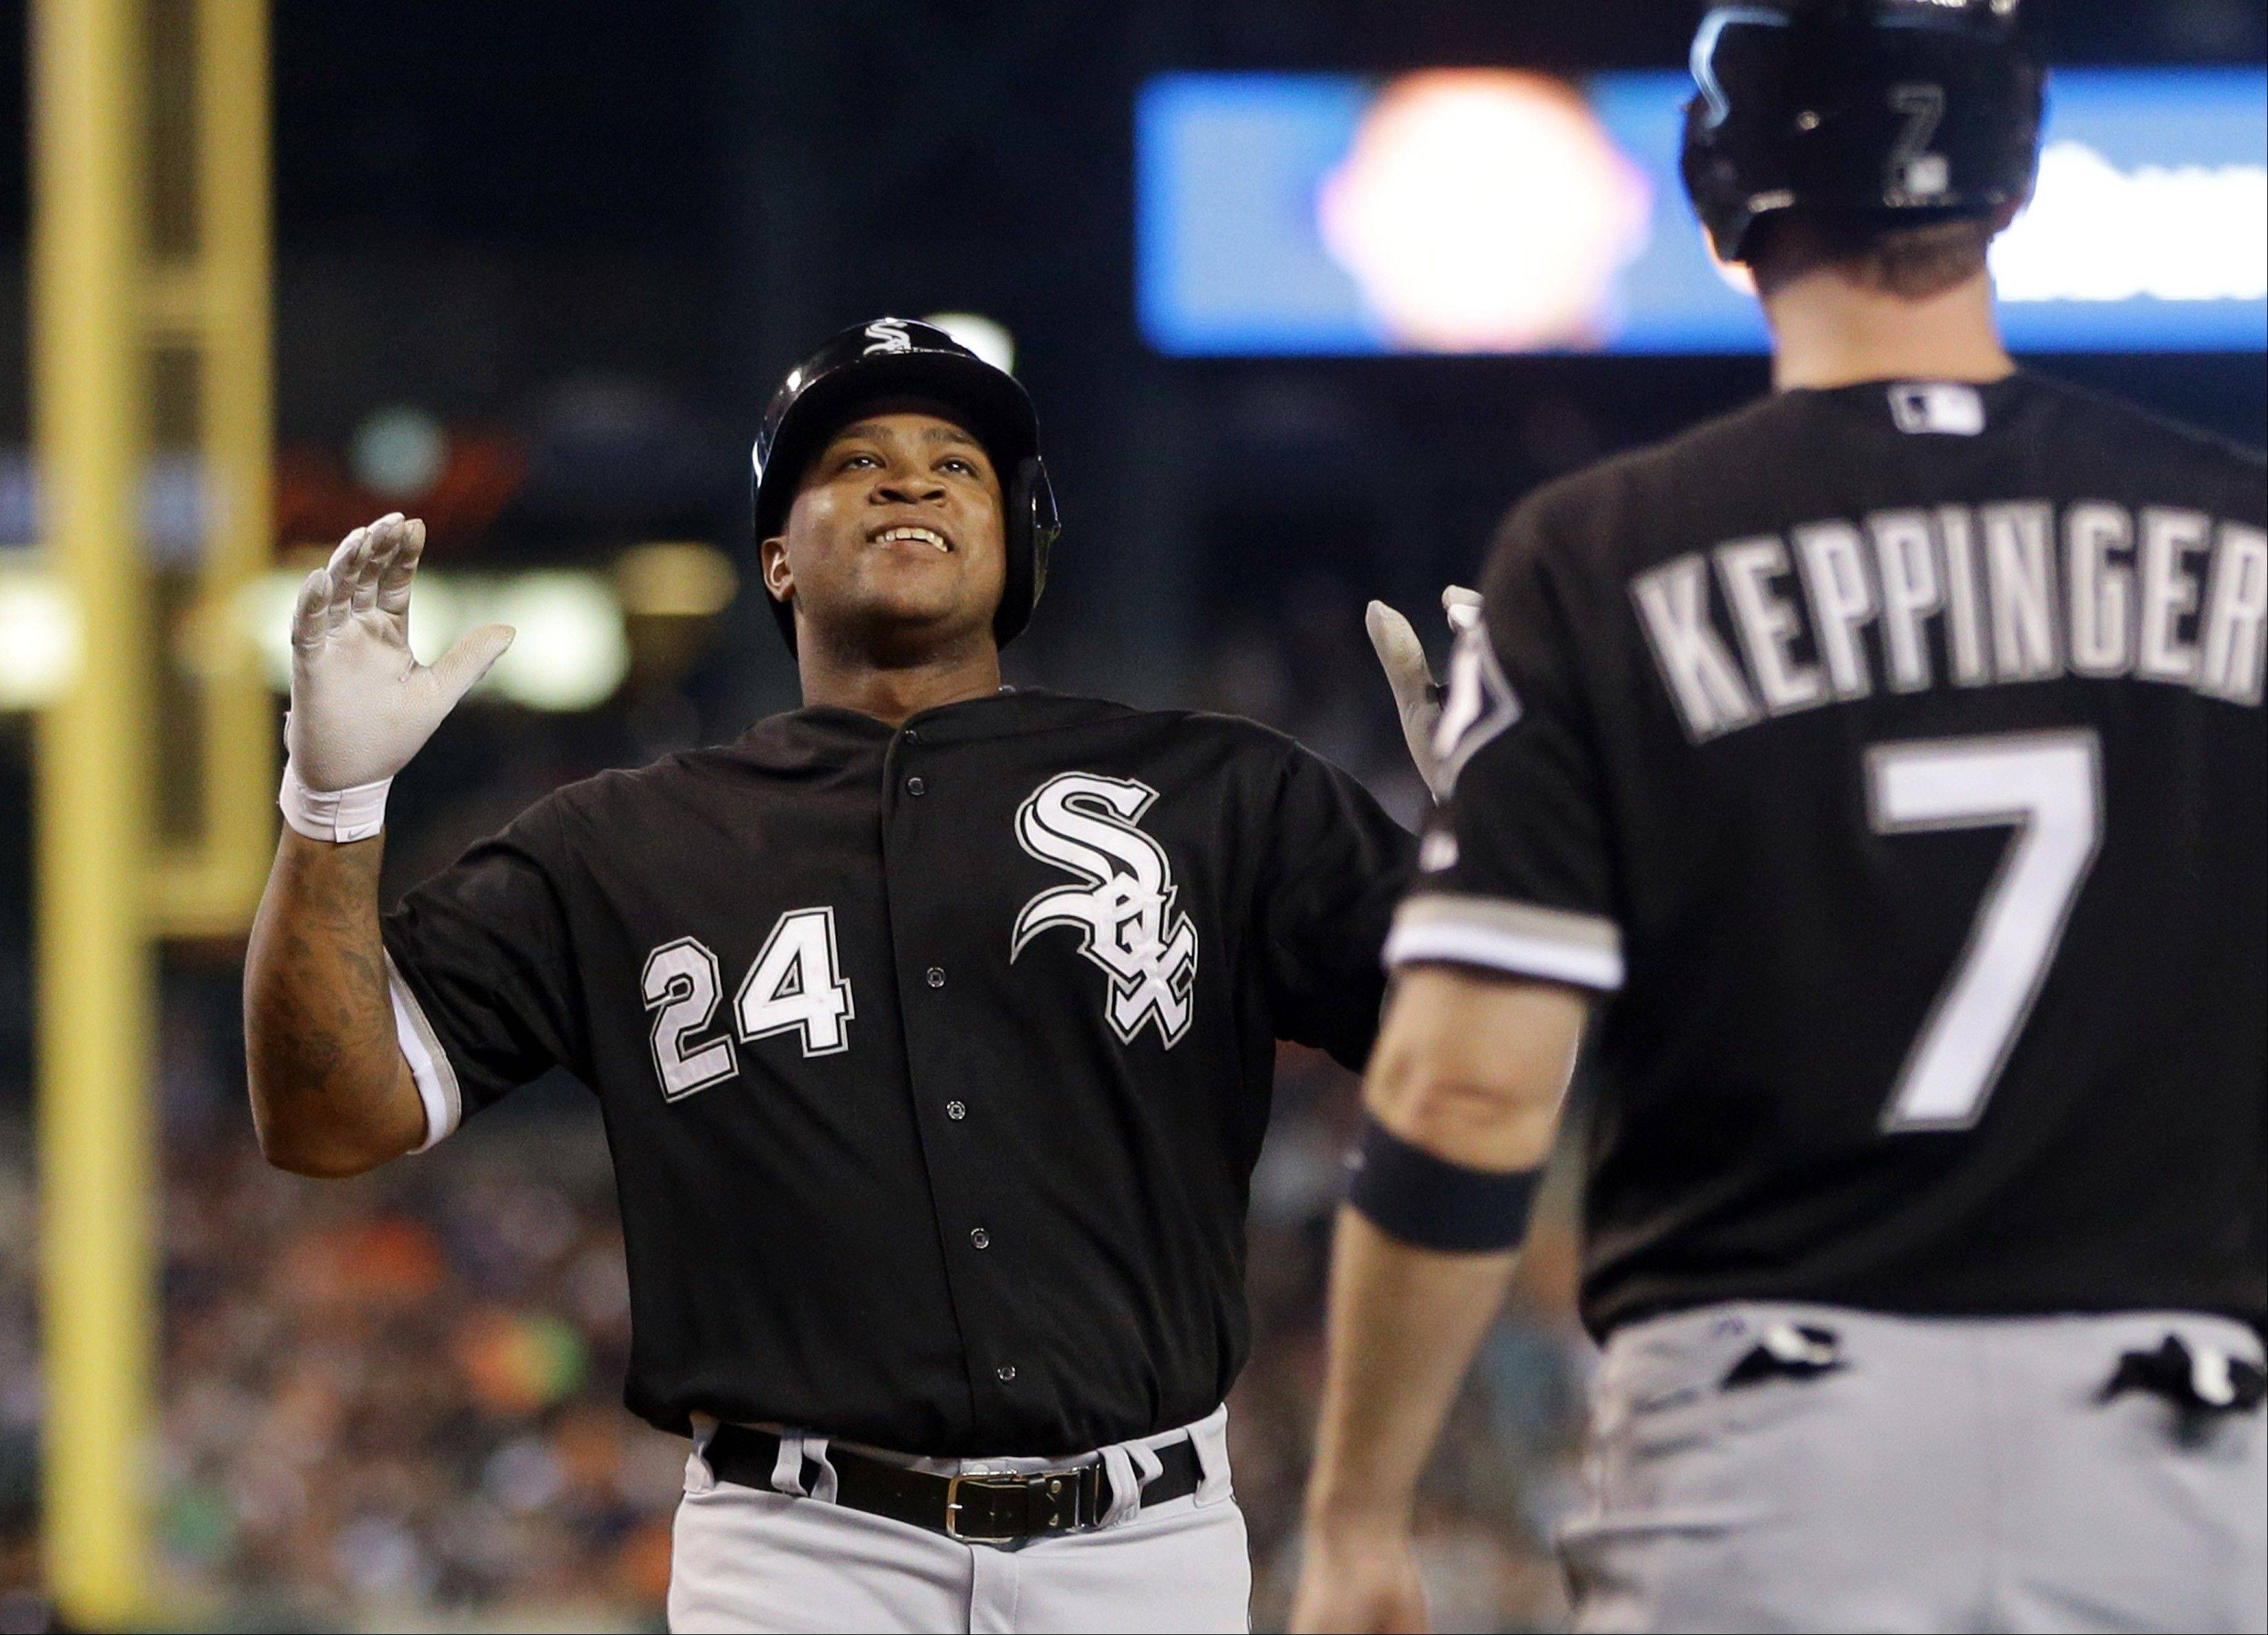 The White Sox on Monday signed left fielder Dayan Viciedo to a one-year contract.